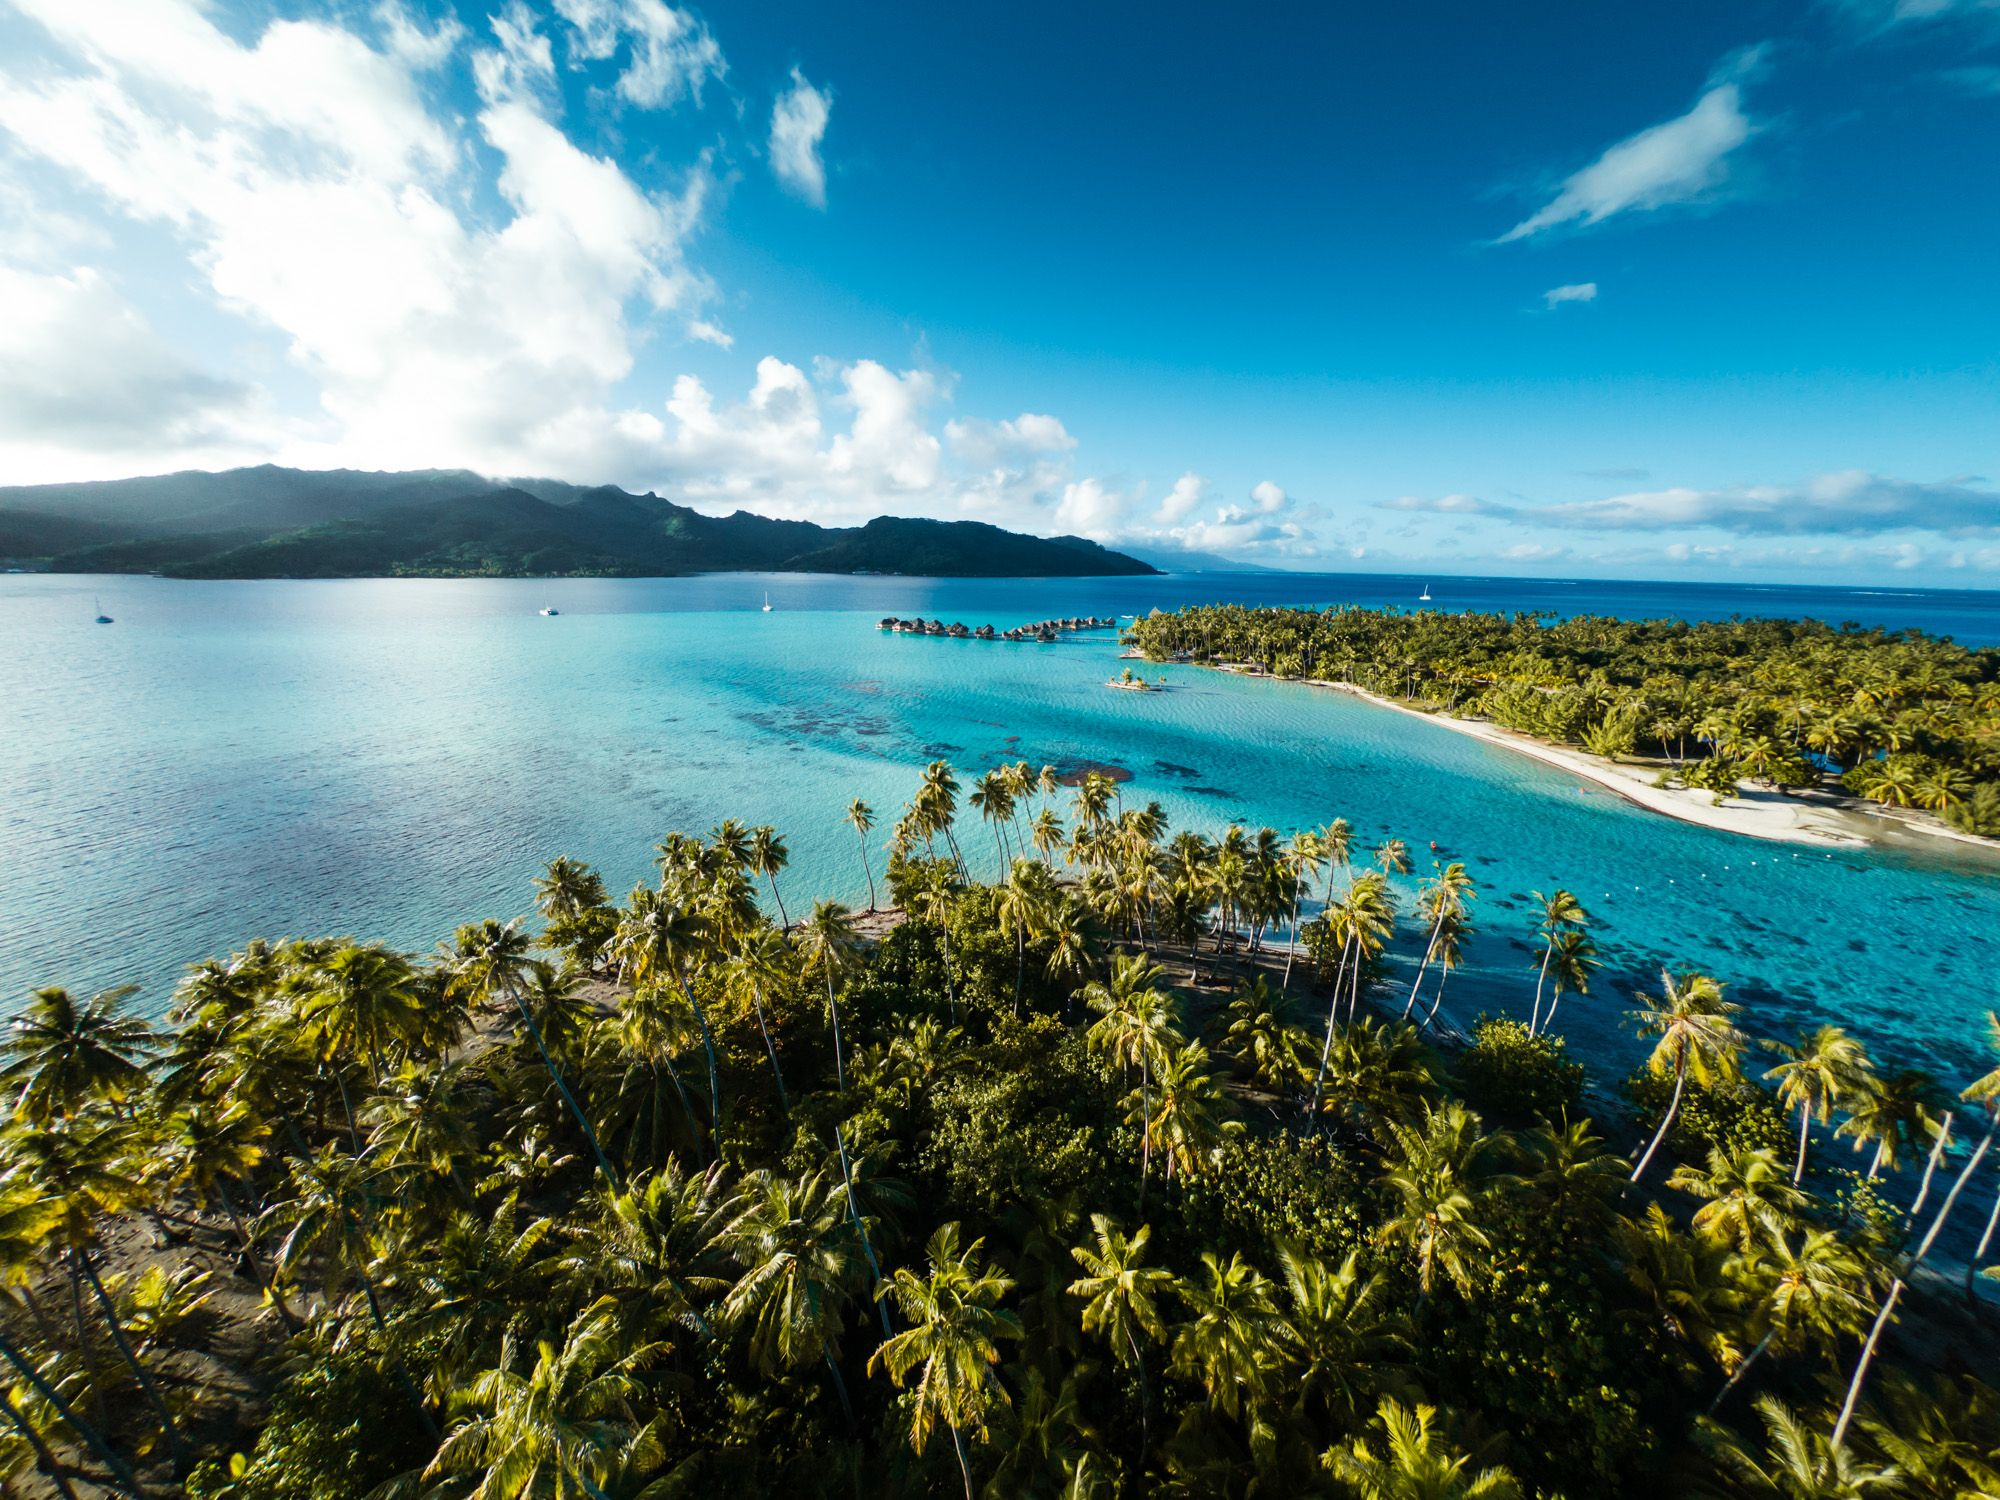 https://tahititourisme.be/wp-content/uploads/2021/05/TahaabyPearl-1.jpeg